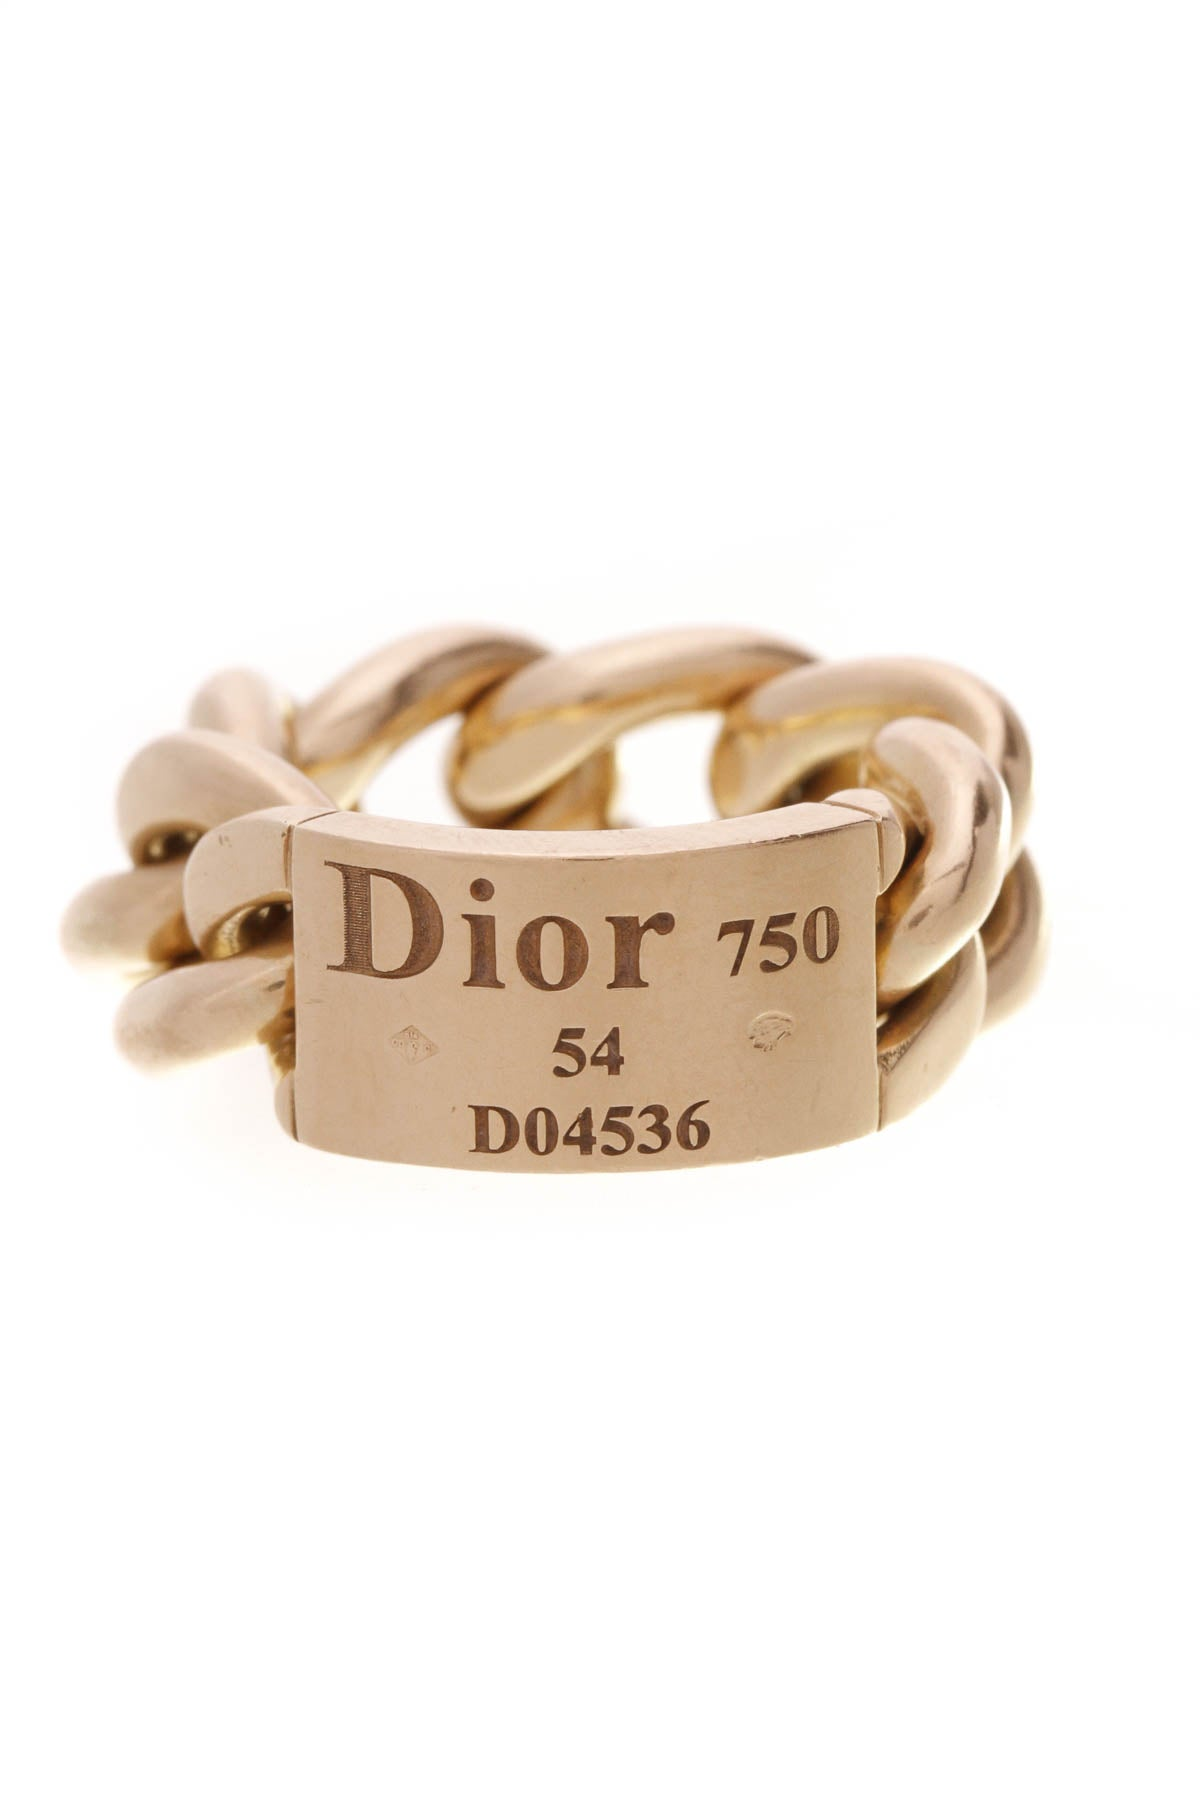 Christian Dior Gourmette Chain Ring - Gold Size 6 – Couture USA